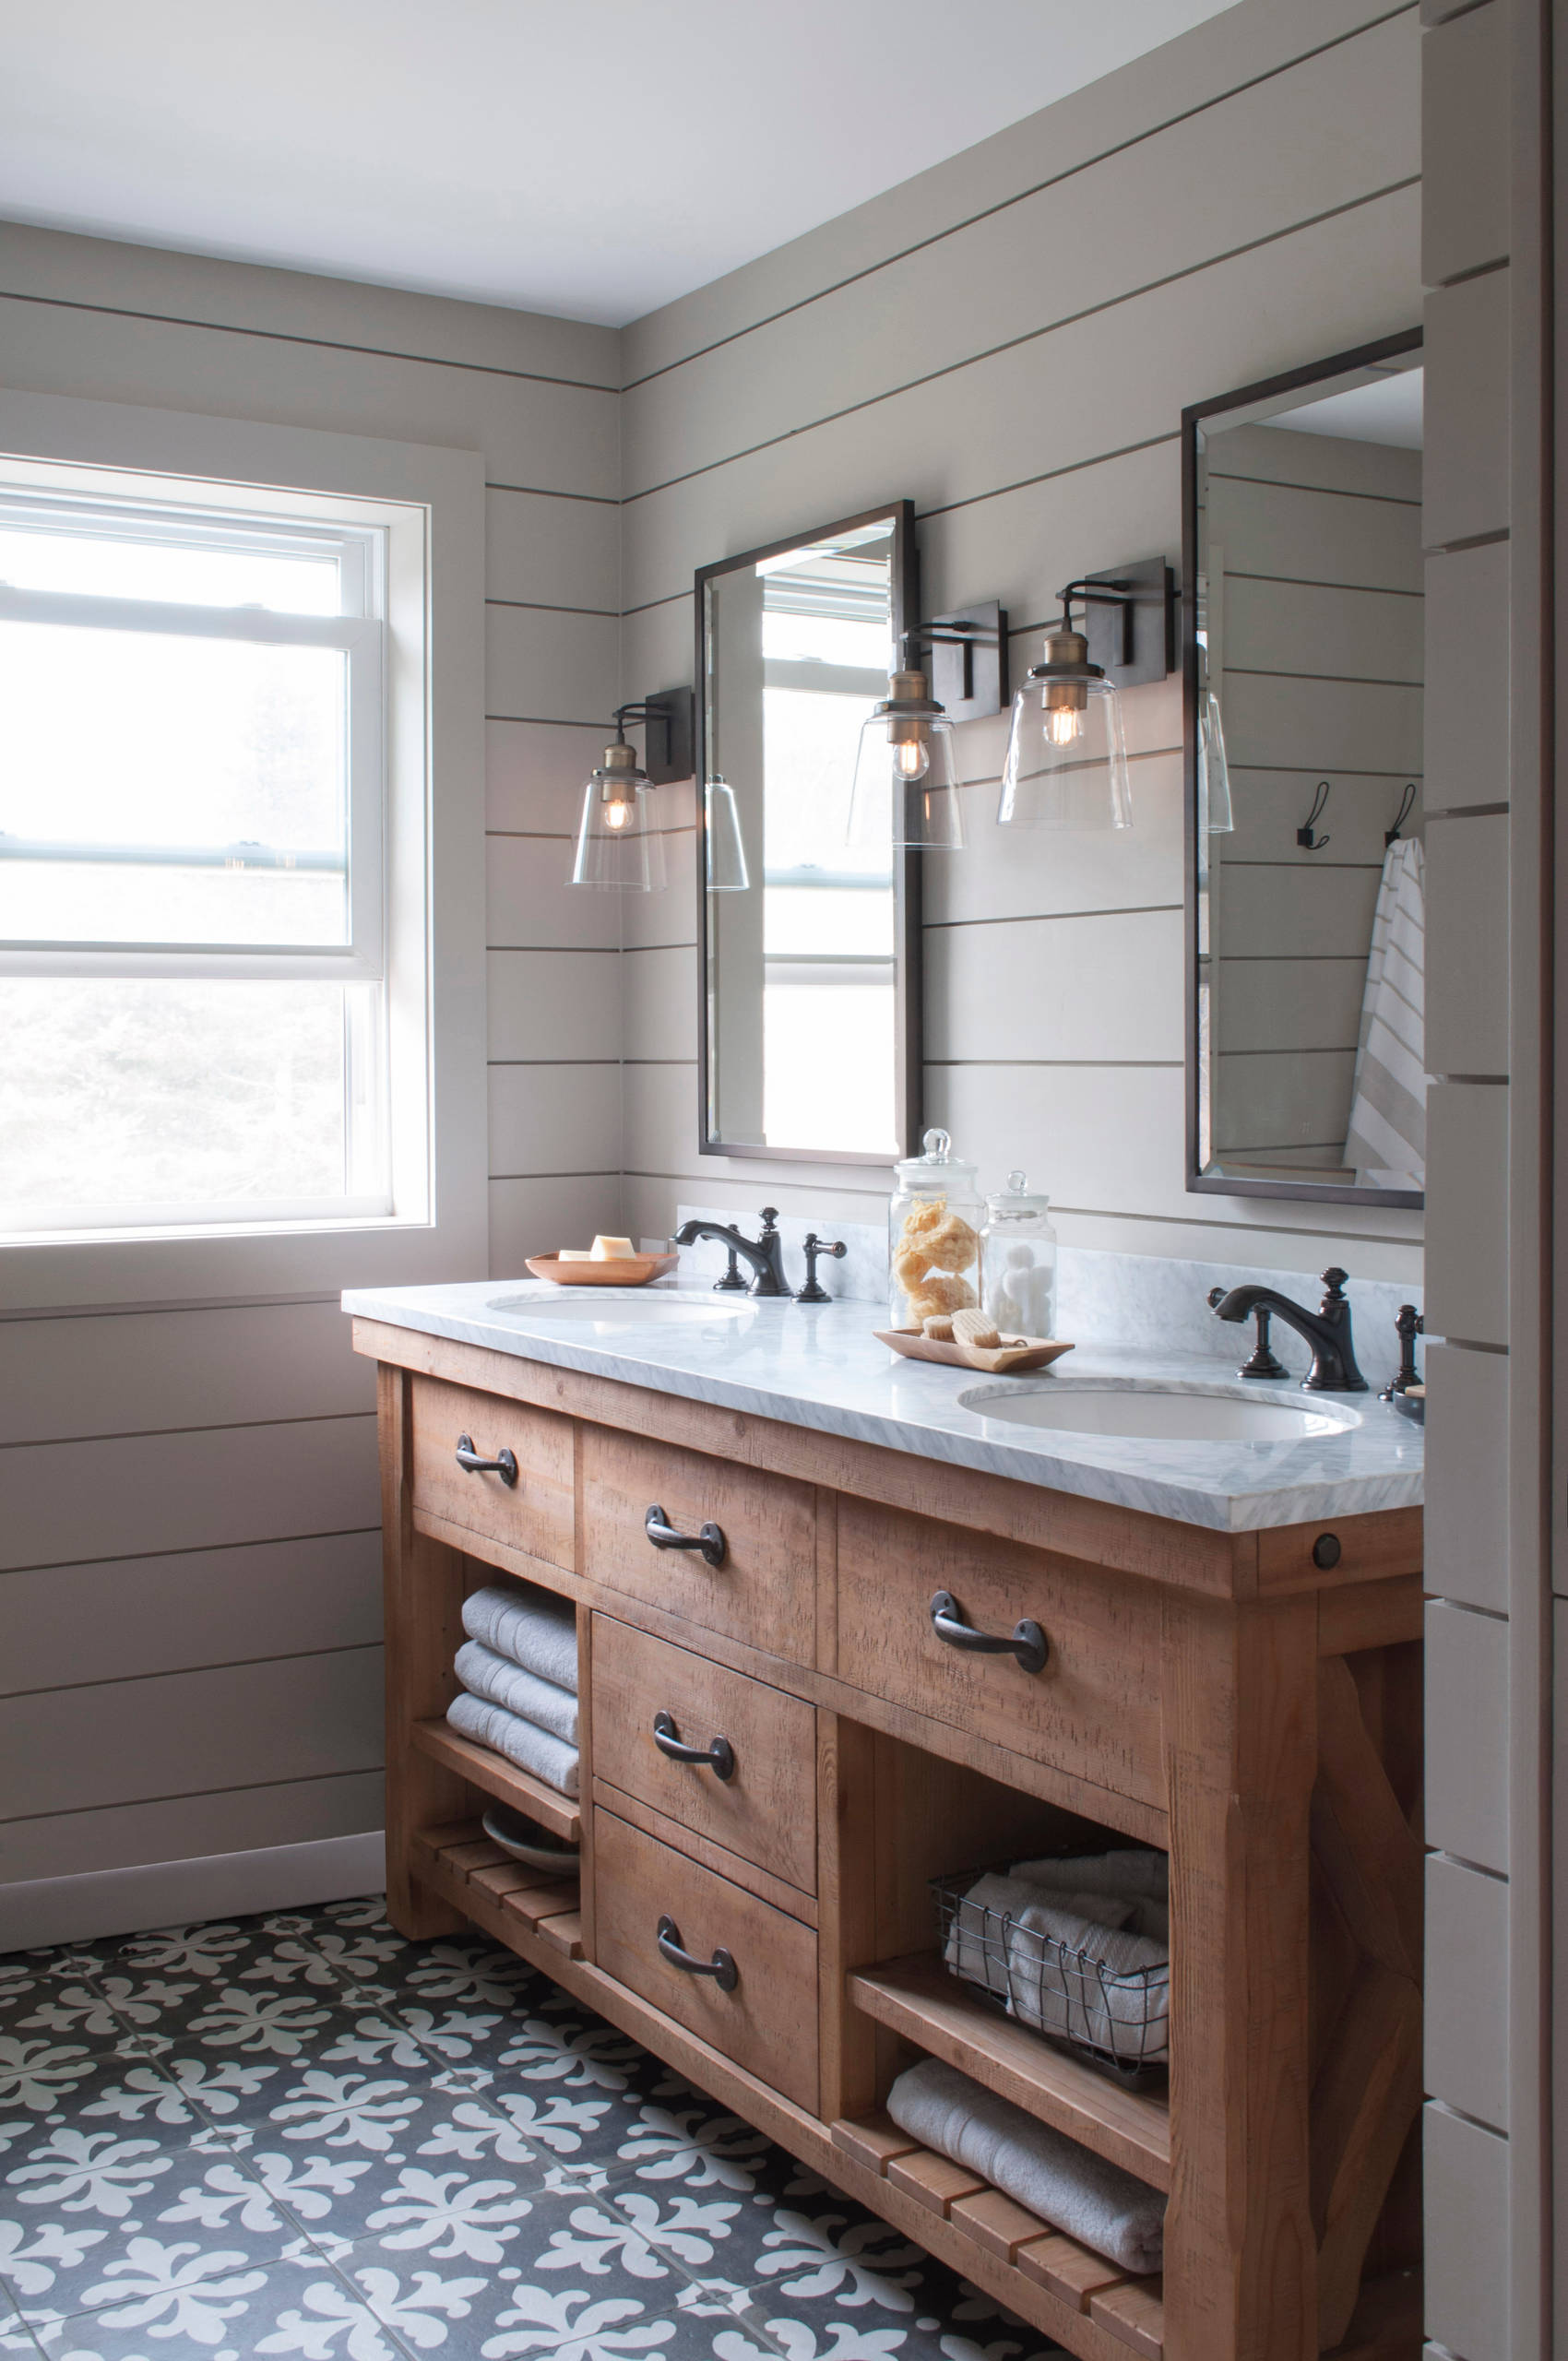 75 Beautiful Farmhouse Ceramic Tile Bathroom Pictures Ideas January 2021 Houzz